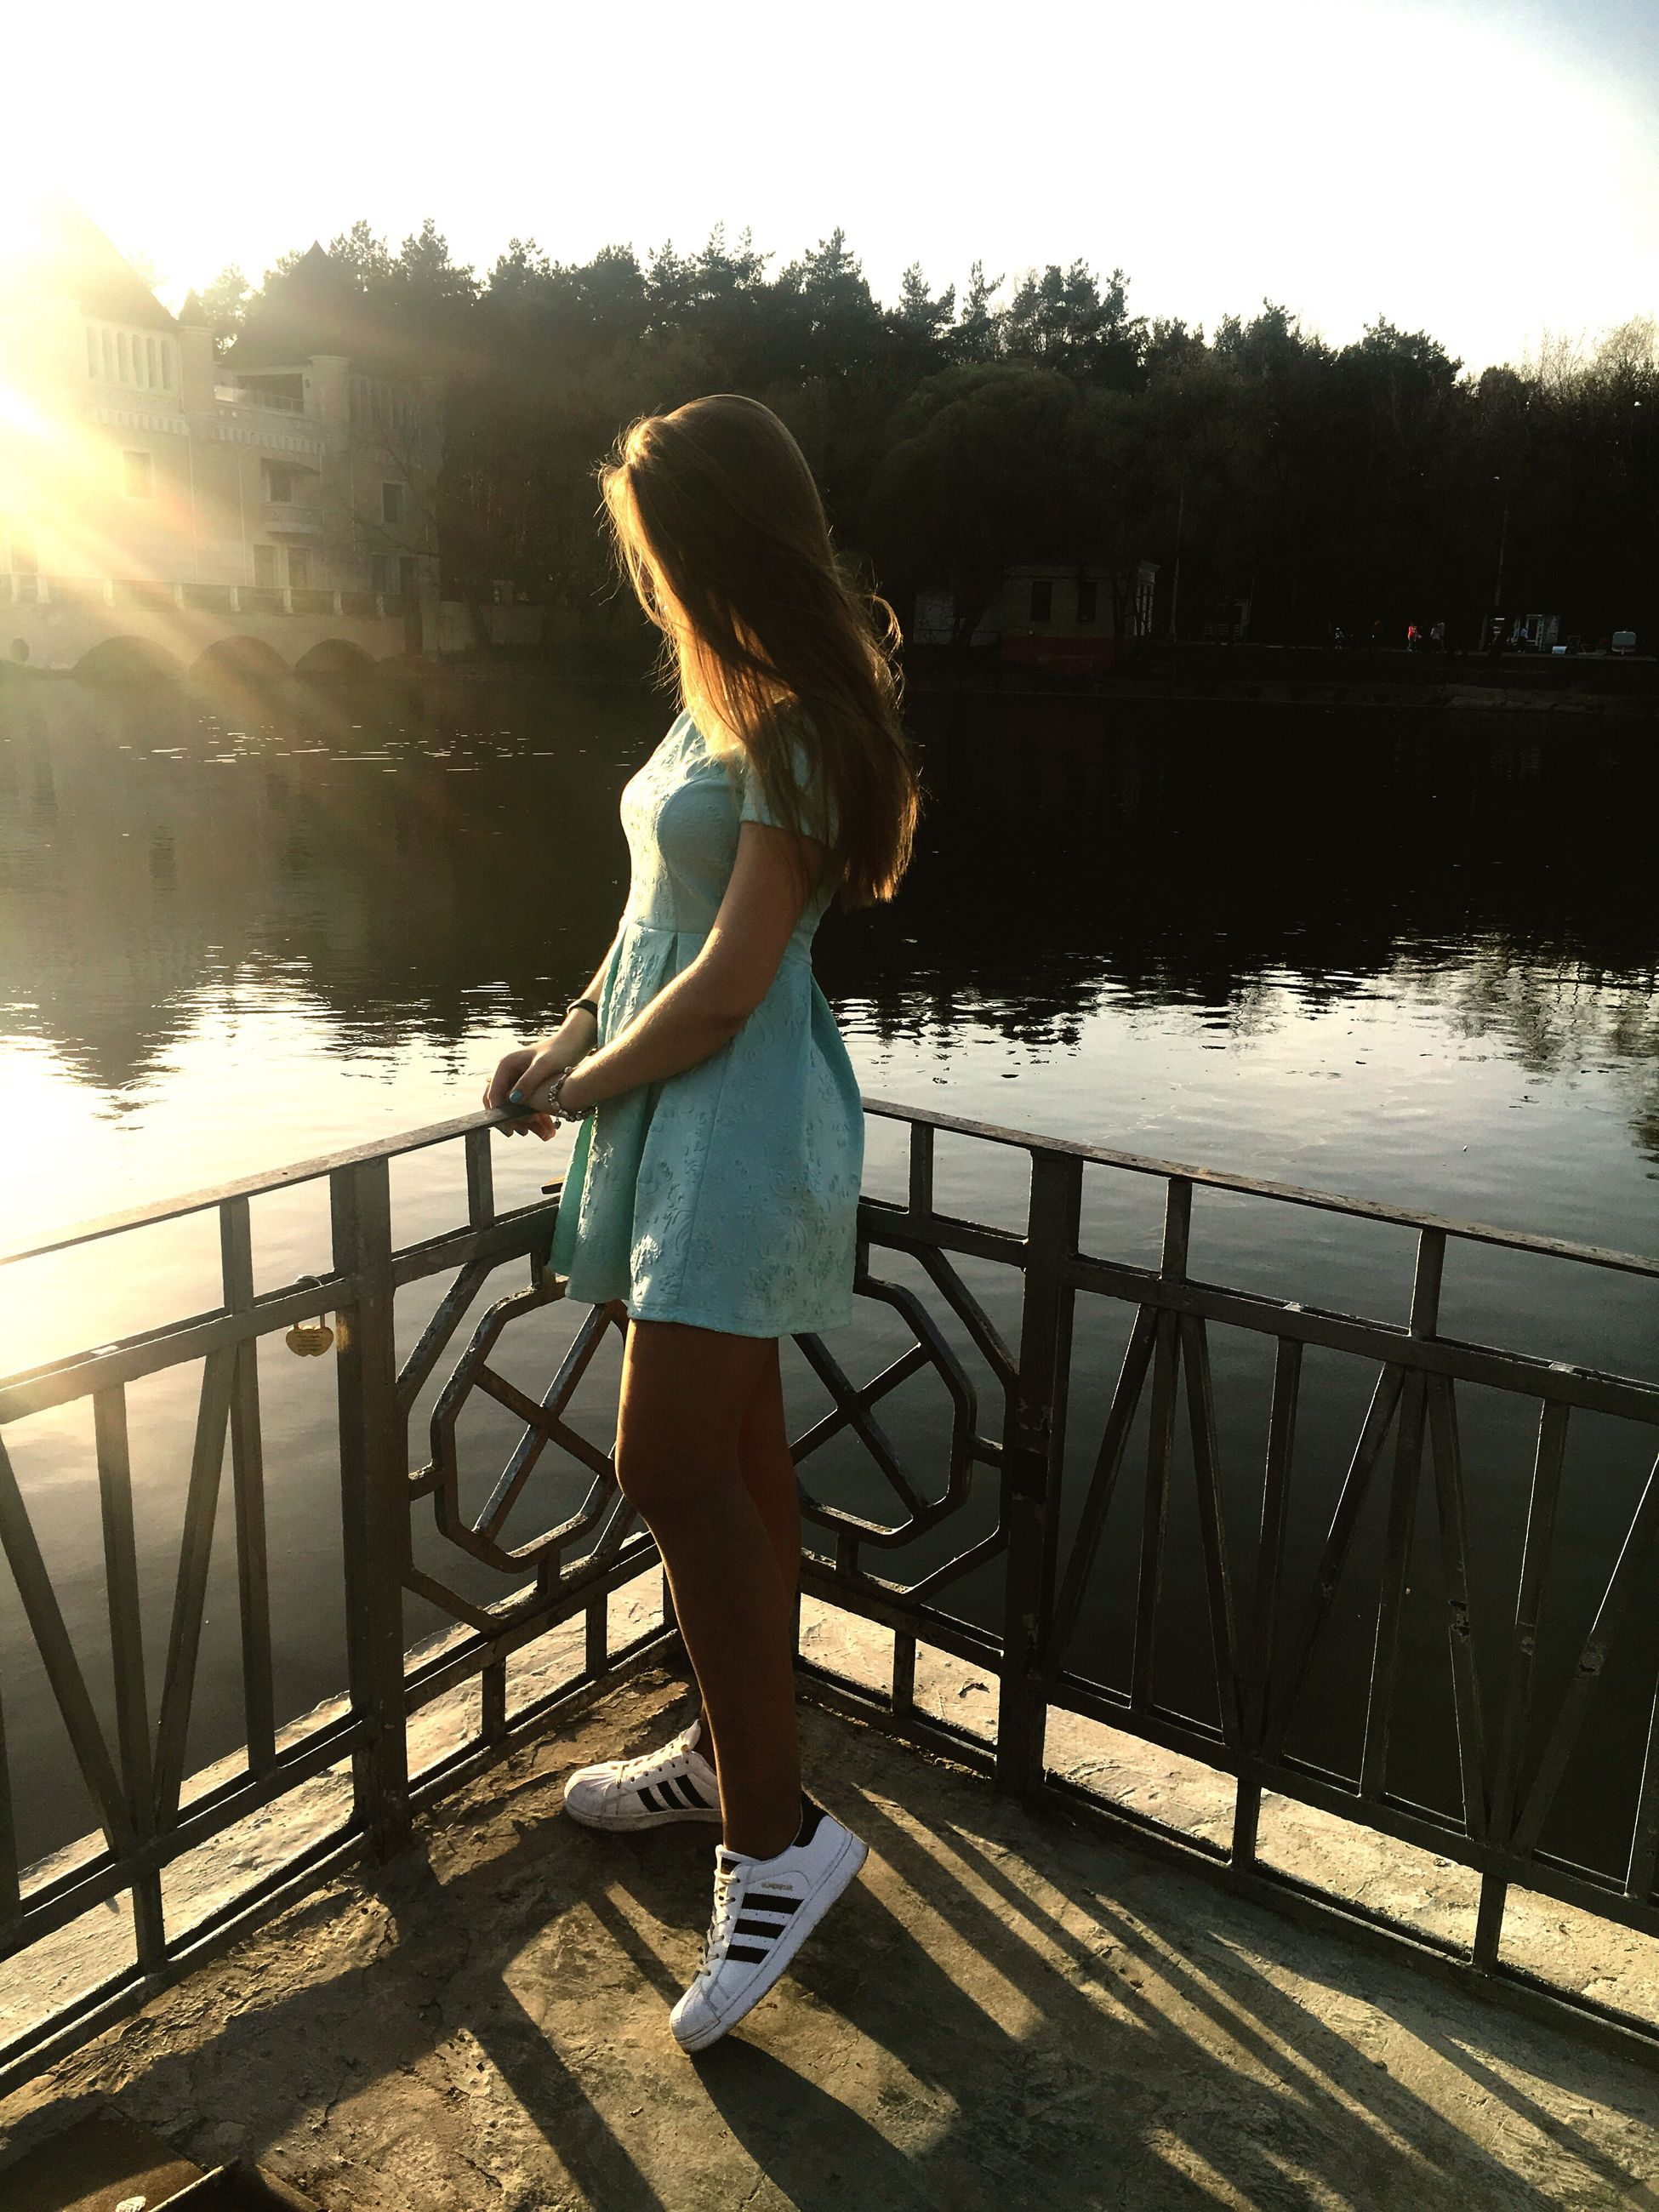 one person, real people, full length, standing, water, sunlight, river, casual clothing, leisure activity, outdoors, lifestyles, sunset, built structure, clear sky, day, women, nature, young women, young adult, sky, beauty in nature, tree